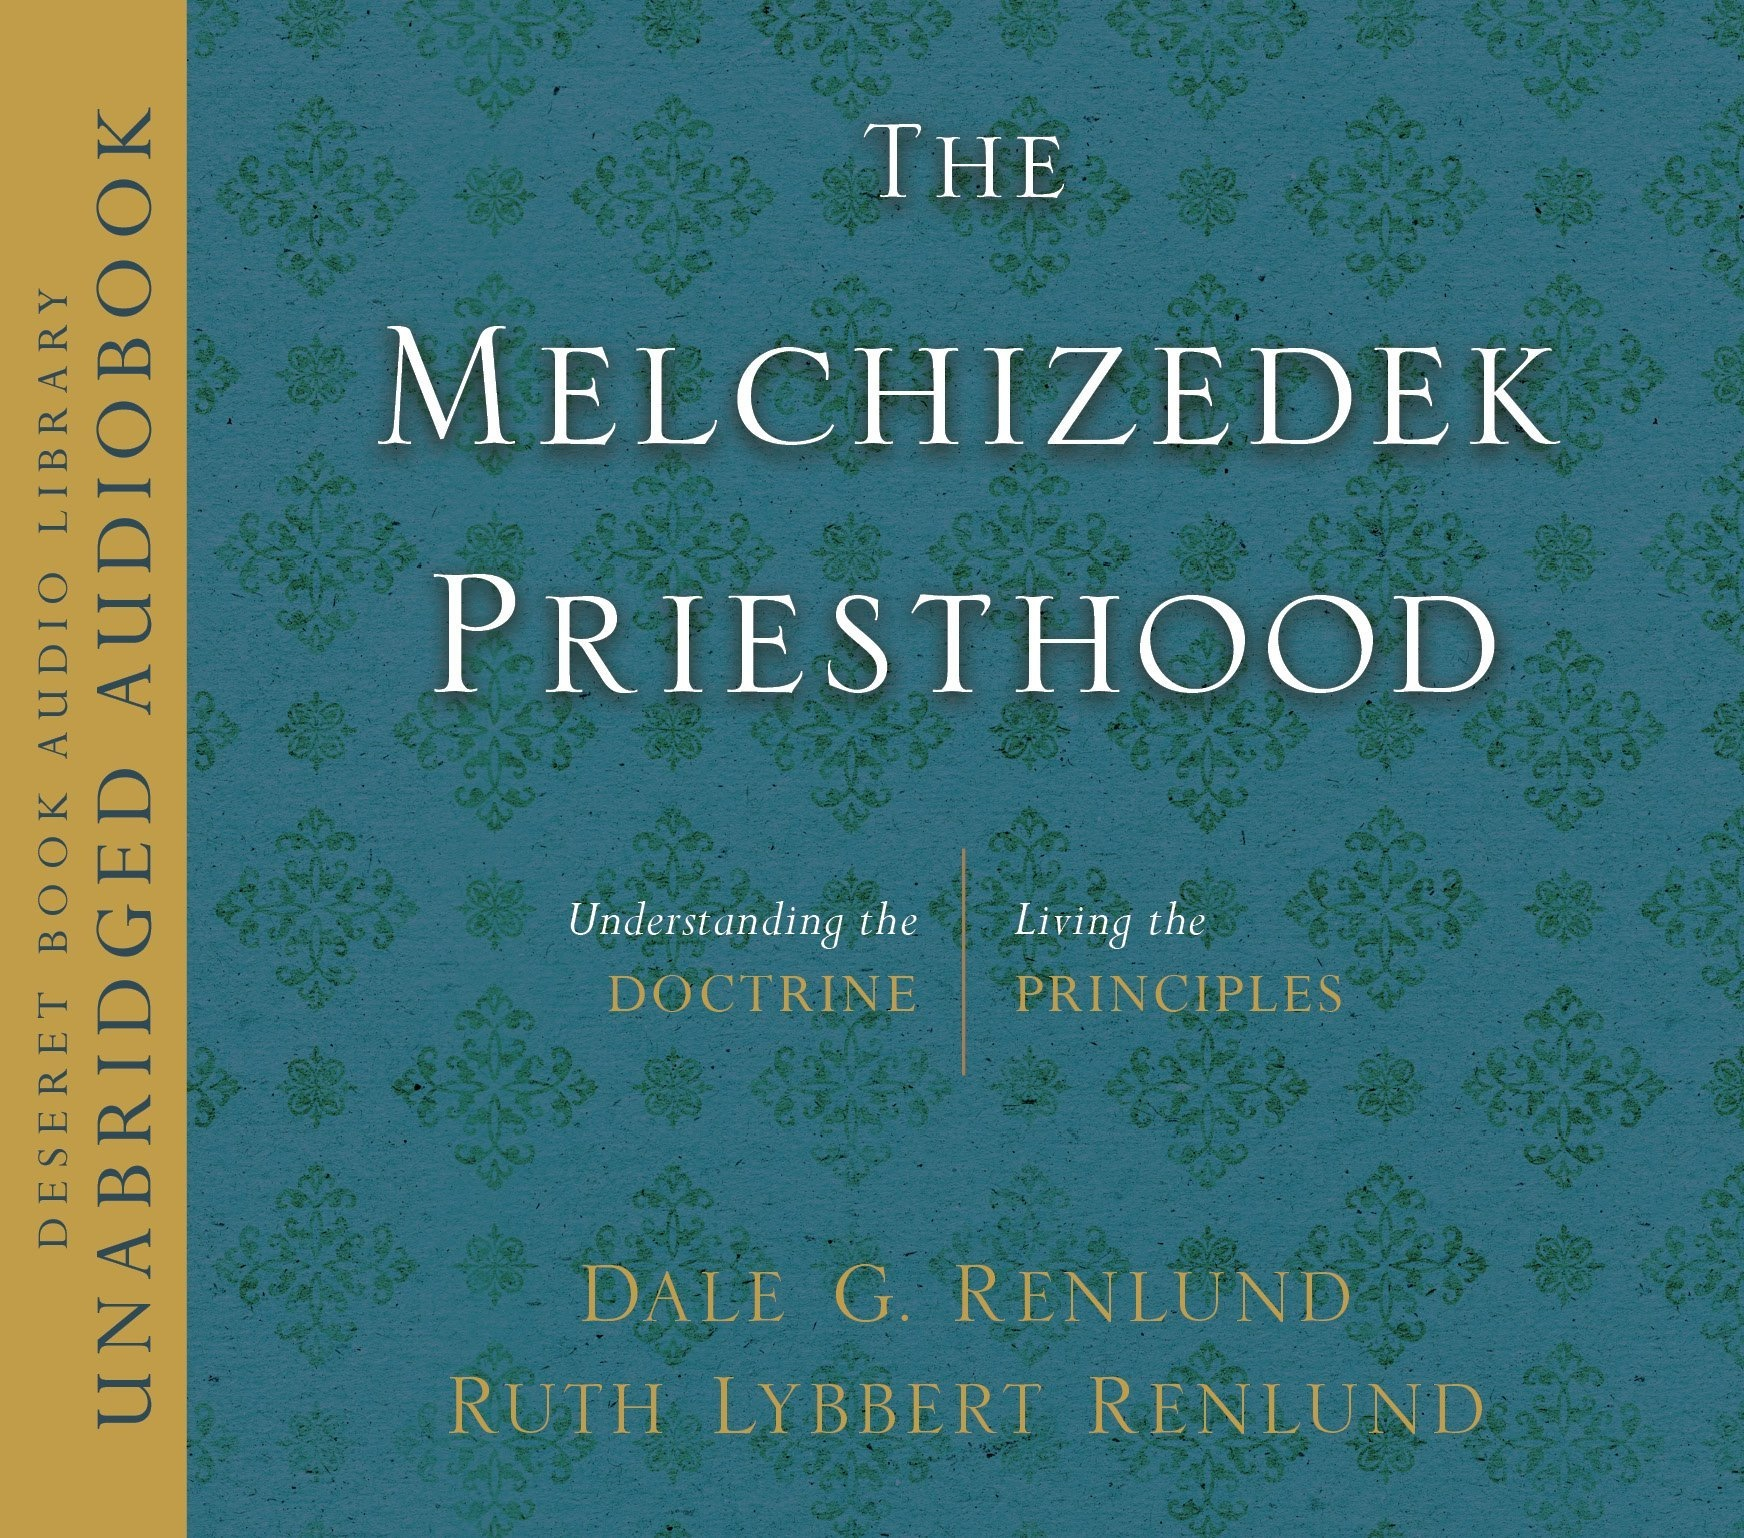 Image for The Melchizedek Priesthood  Understanding the Doctrine, Living the Principles